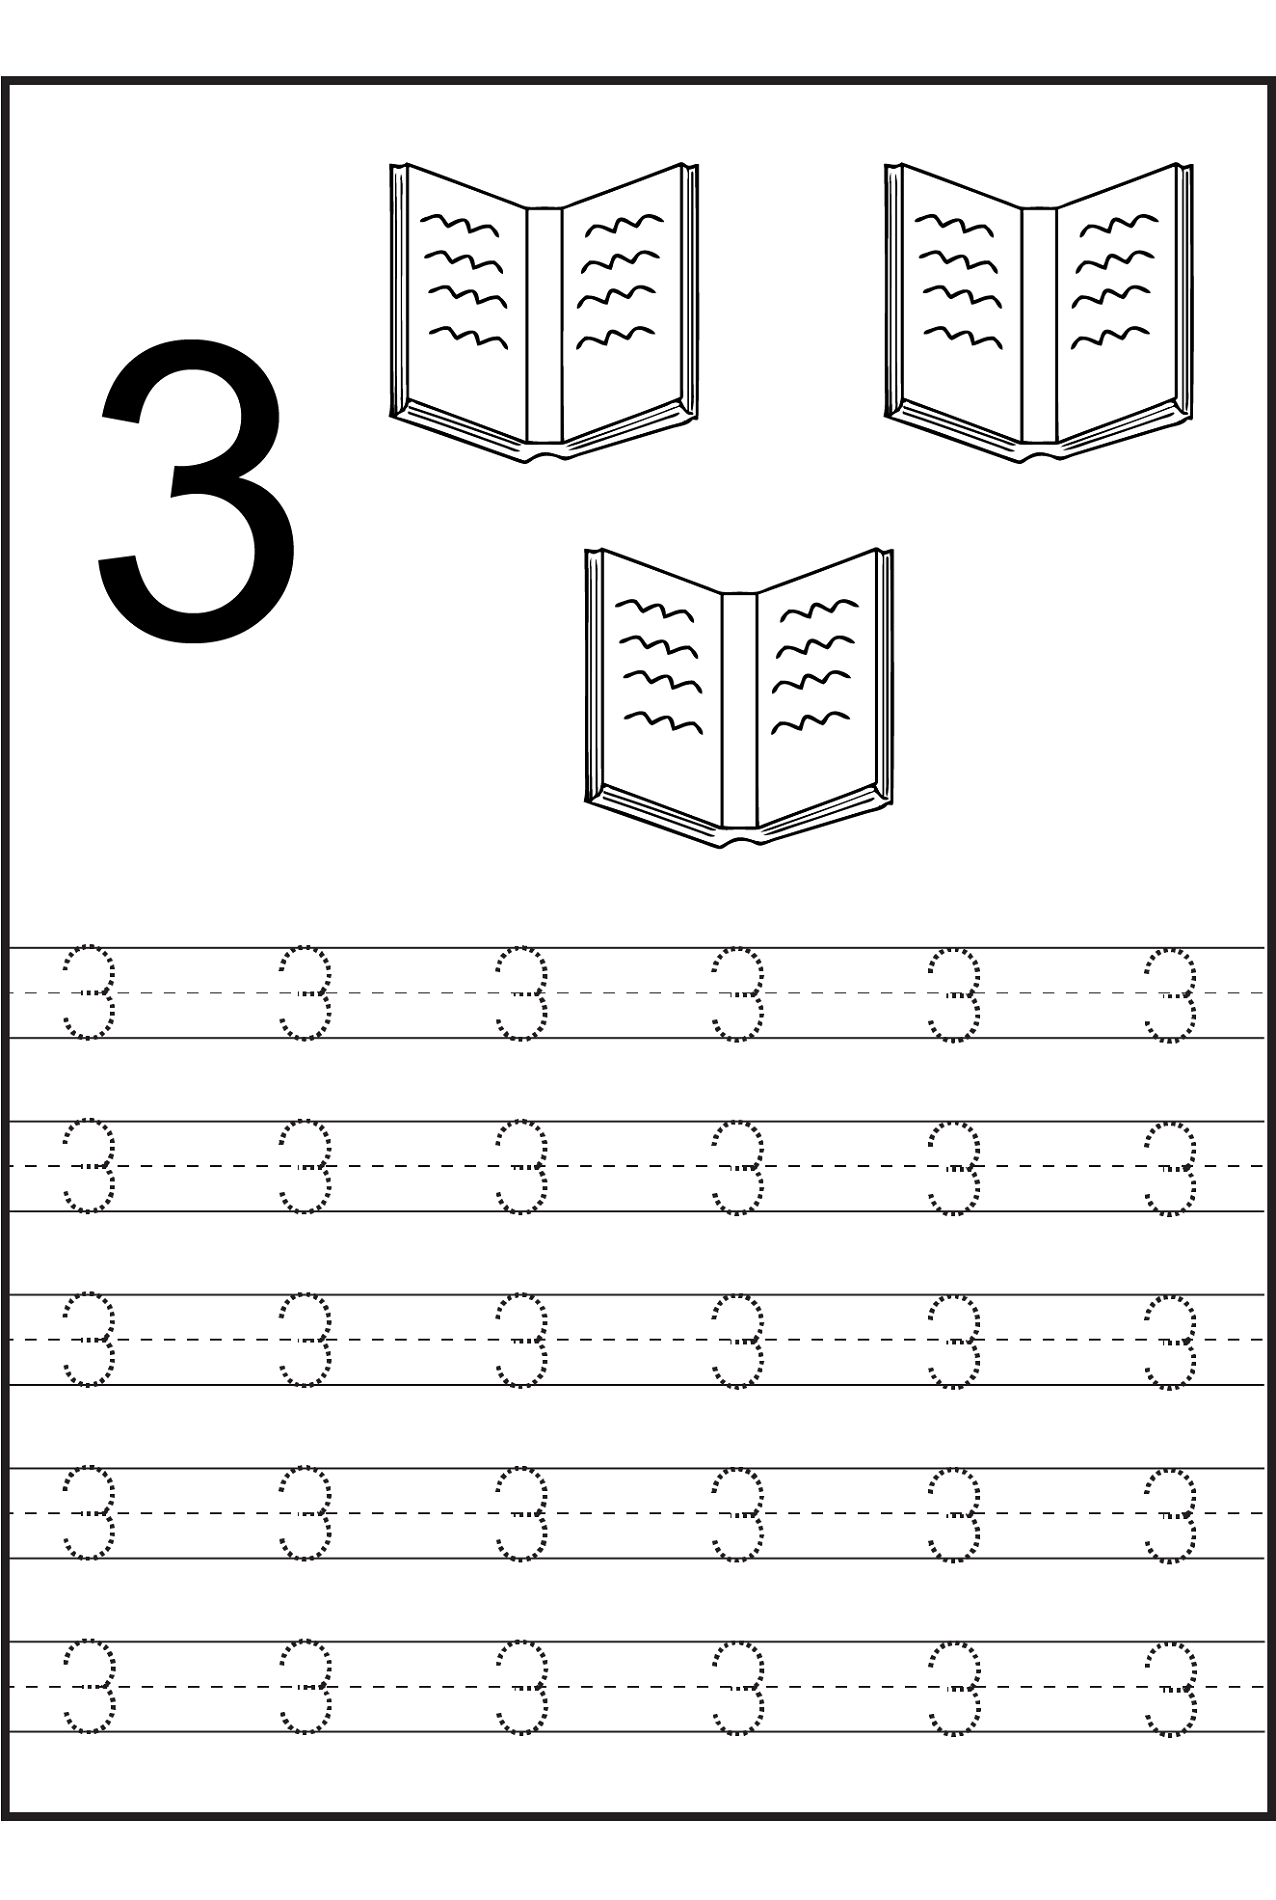 small resolution of Worksheets For 2 Year Olds Number 3 Sarmad S Activities   Learning  worksheets